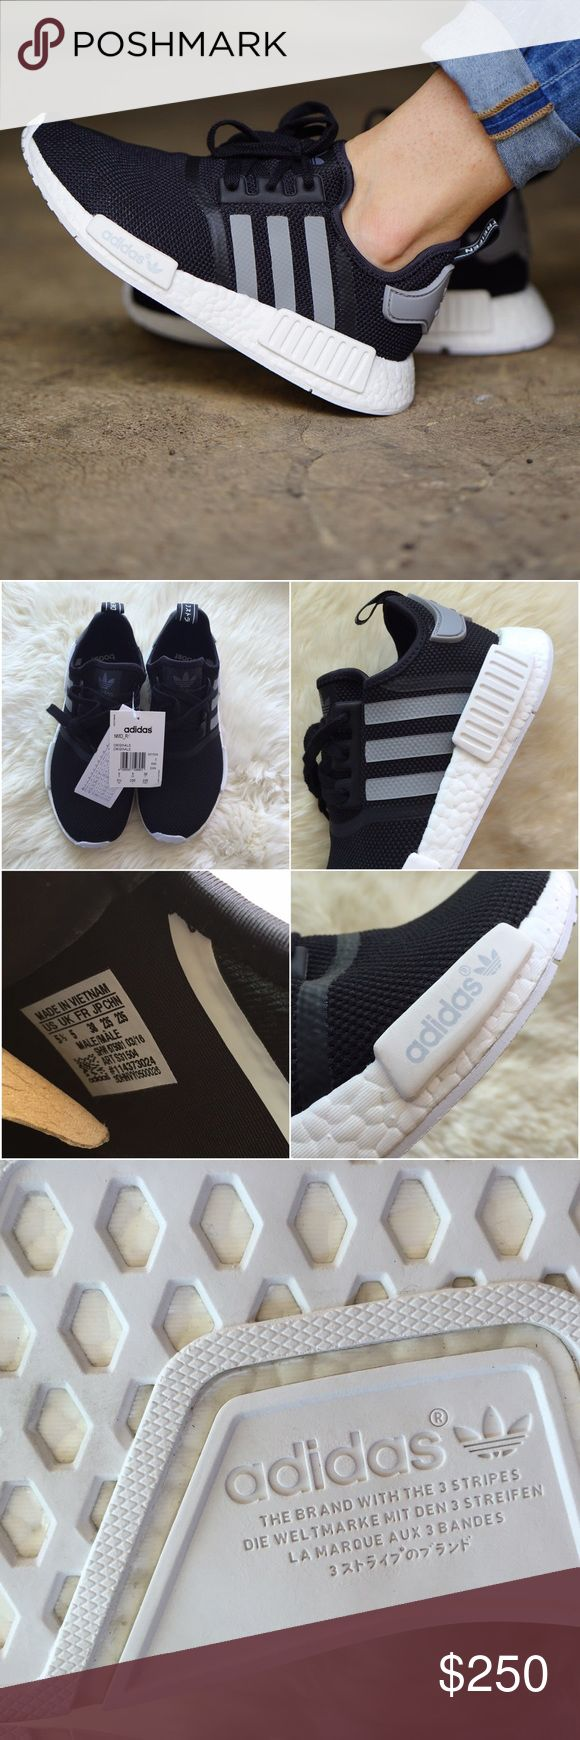 $60 Supreme x Louis Vuitton x adidas NMD R1 又拍图片管家